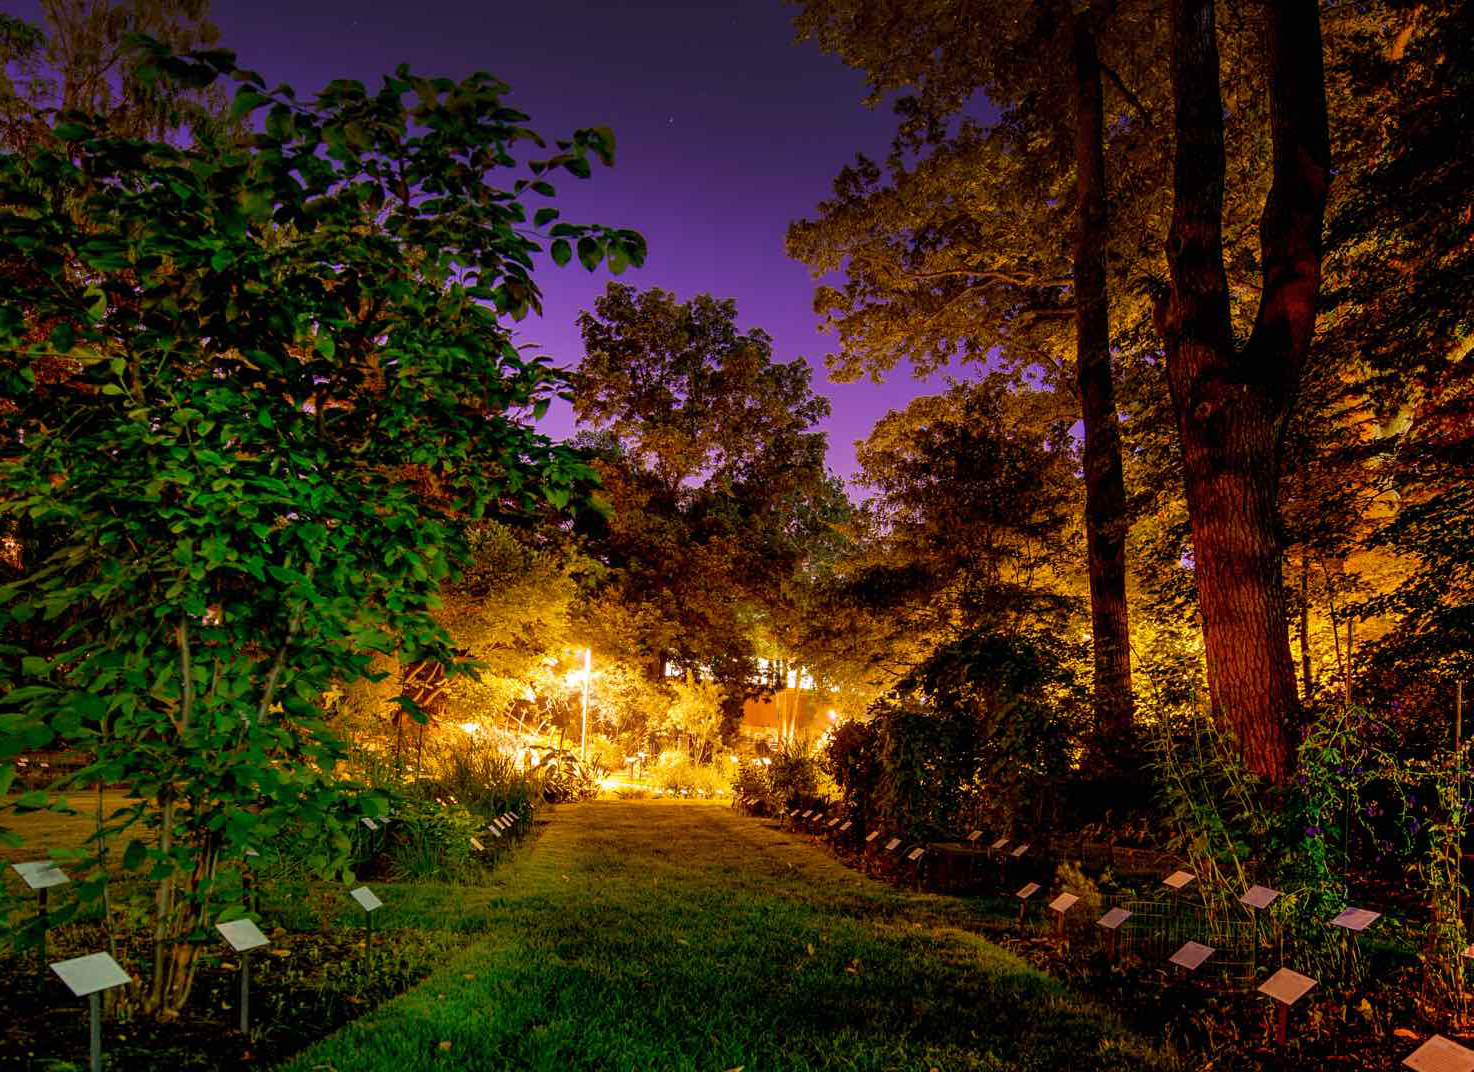 Beal Garden glows with a pink and purple sky